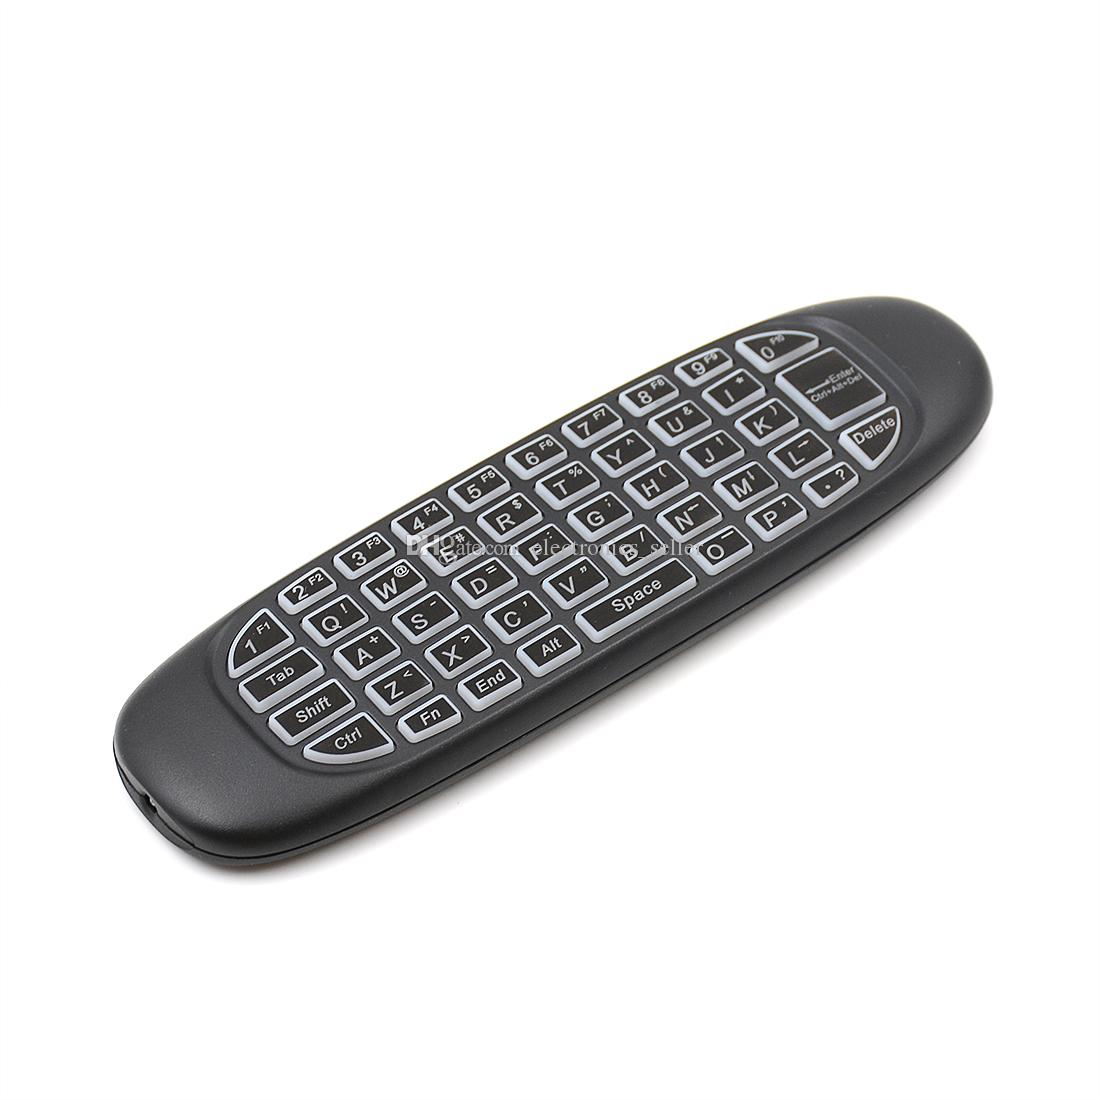 C120 G64 Backlight Fly Air Mouse 2.4GHz Wireless Mini Keyboard 6-Axis Gyroscope Game Handgrip Remote Control for Android TV BOX Backlit